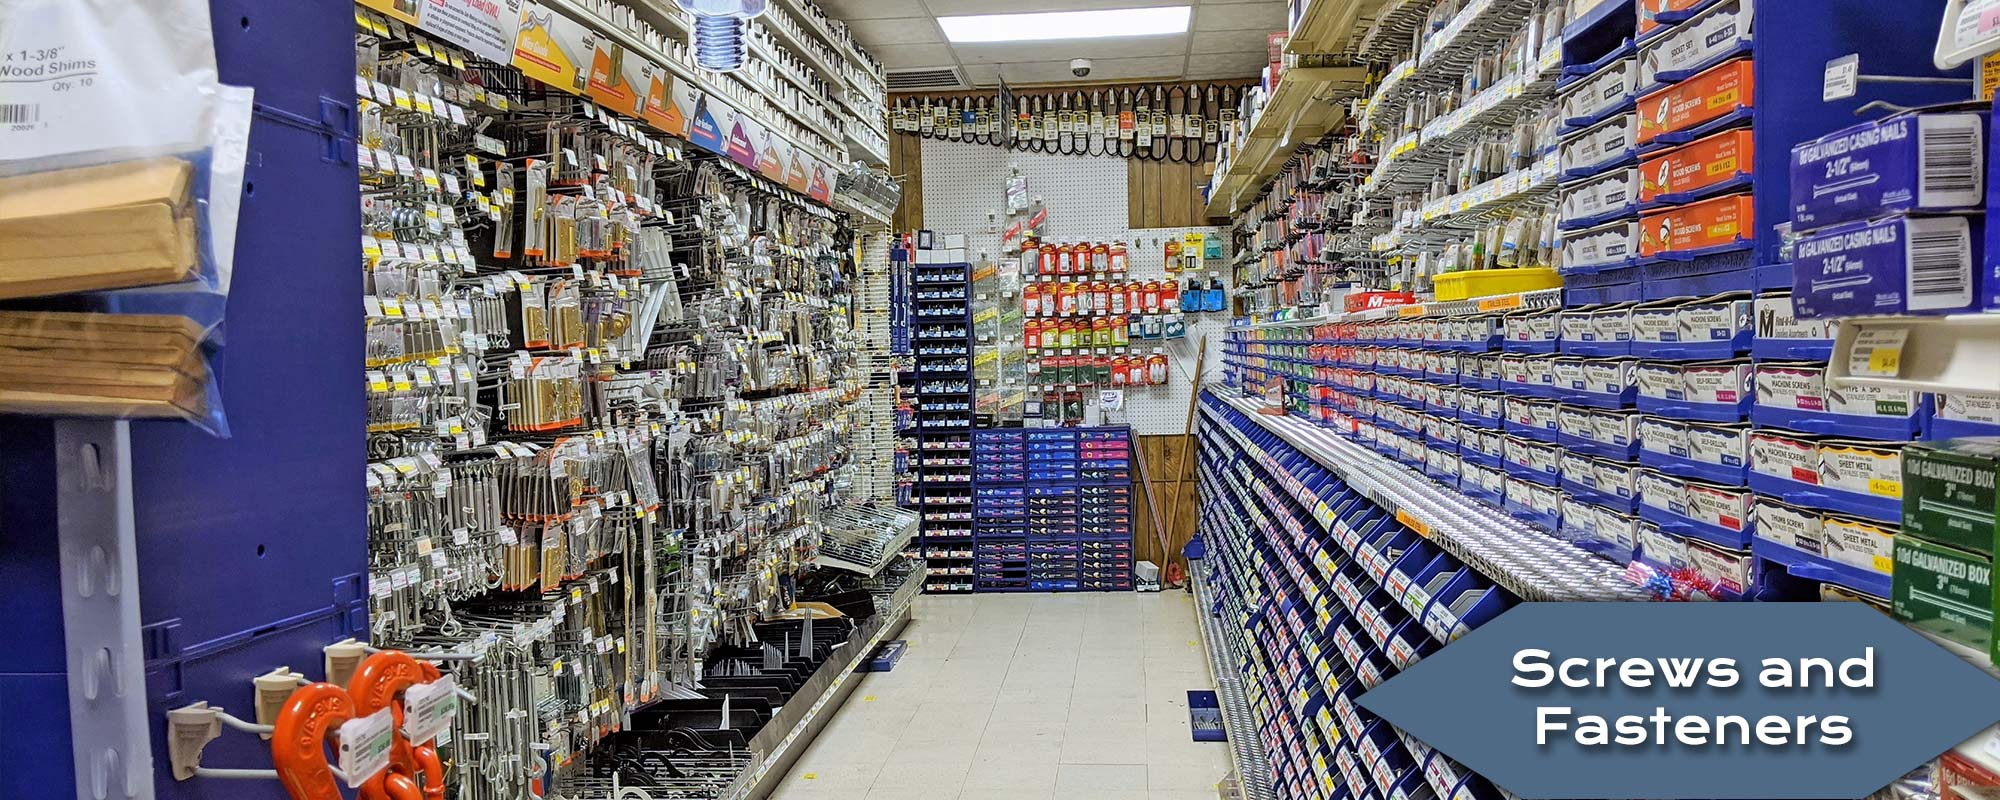 Shop and Buy Screws and Fasteners at Harbor Hardware Store in Door County, WI